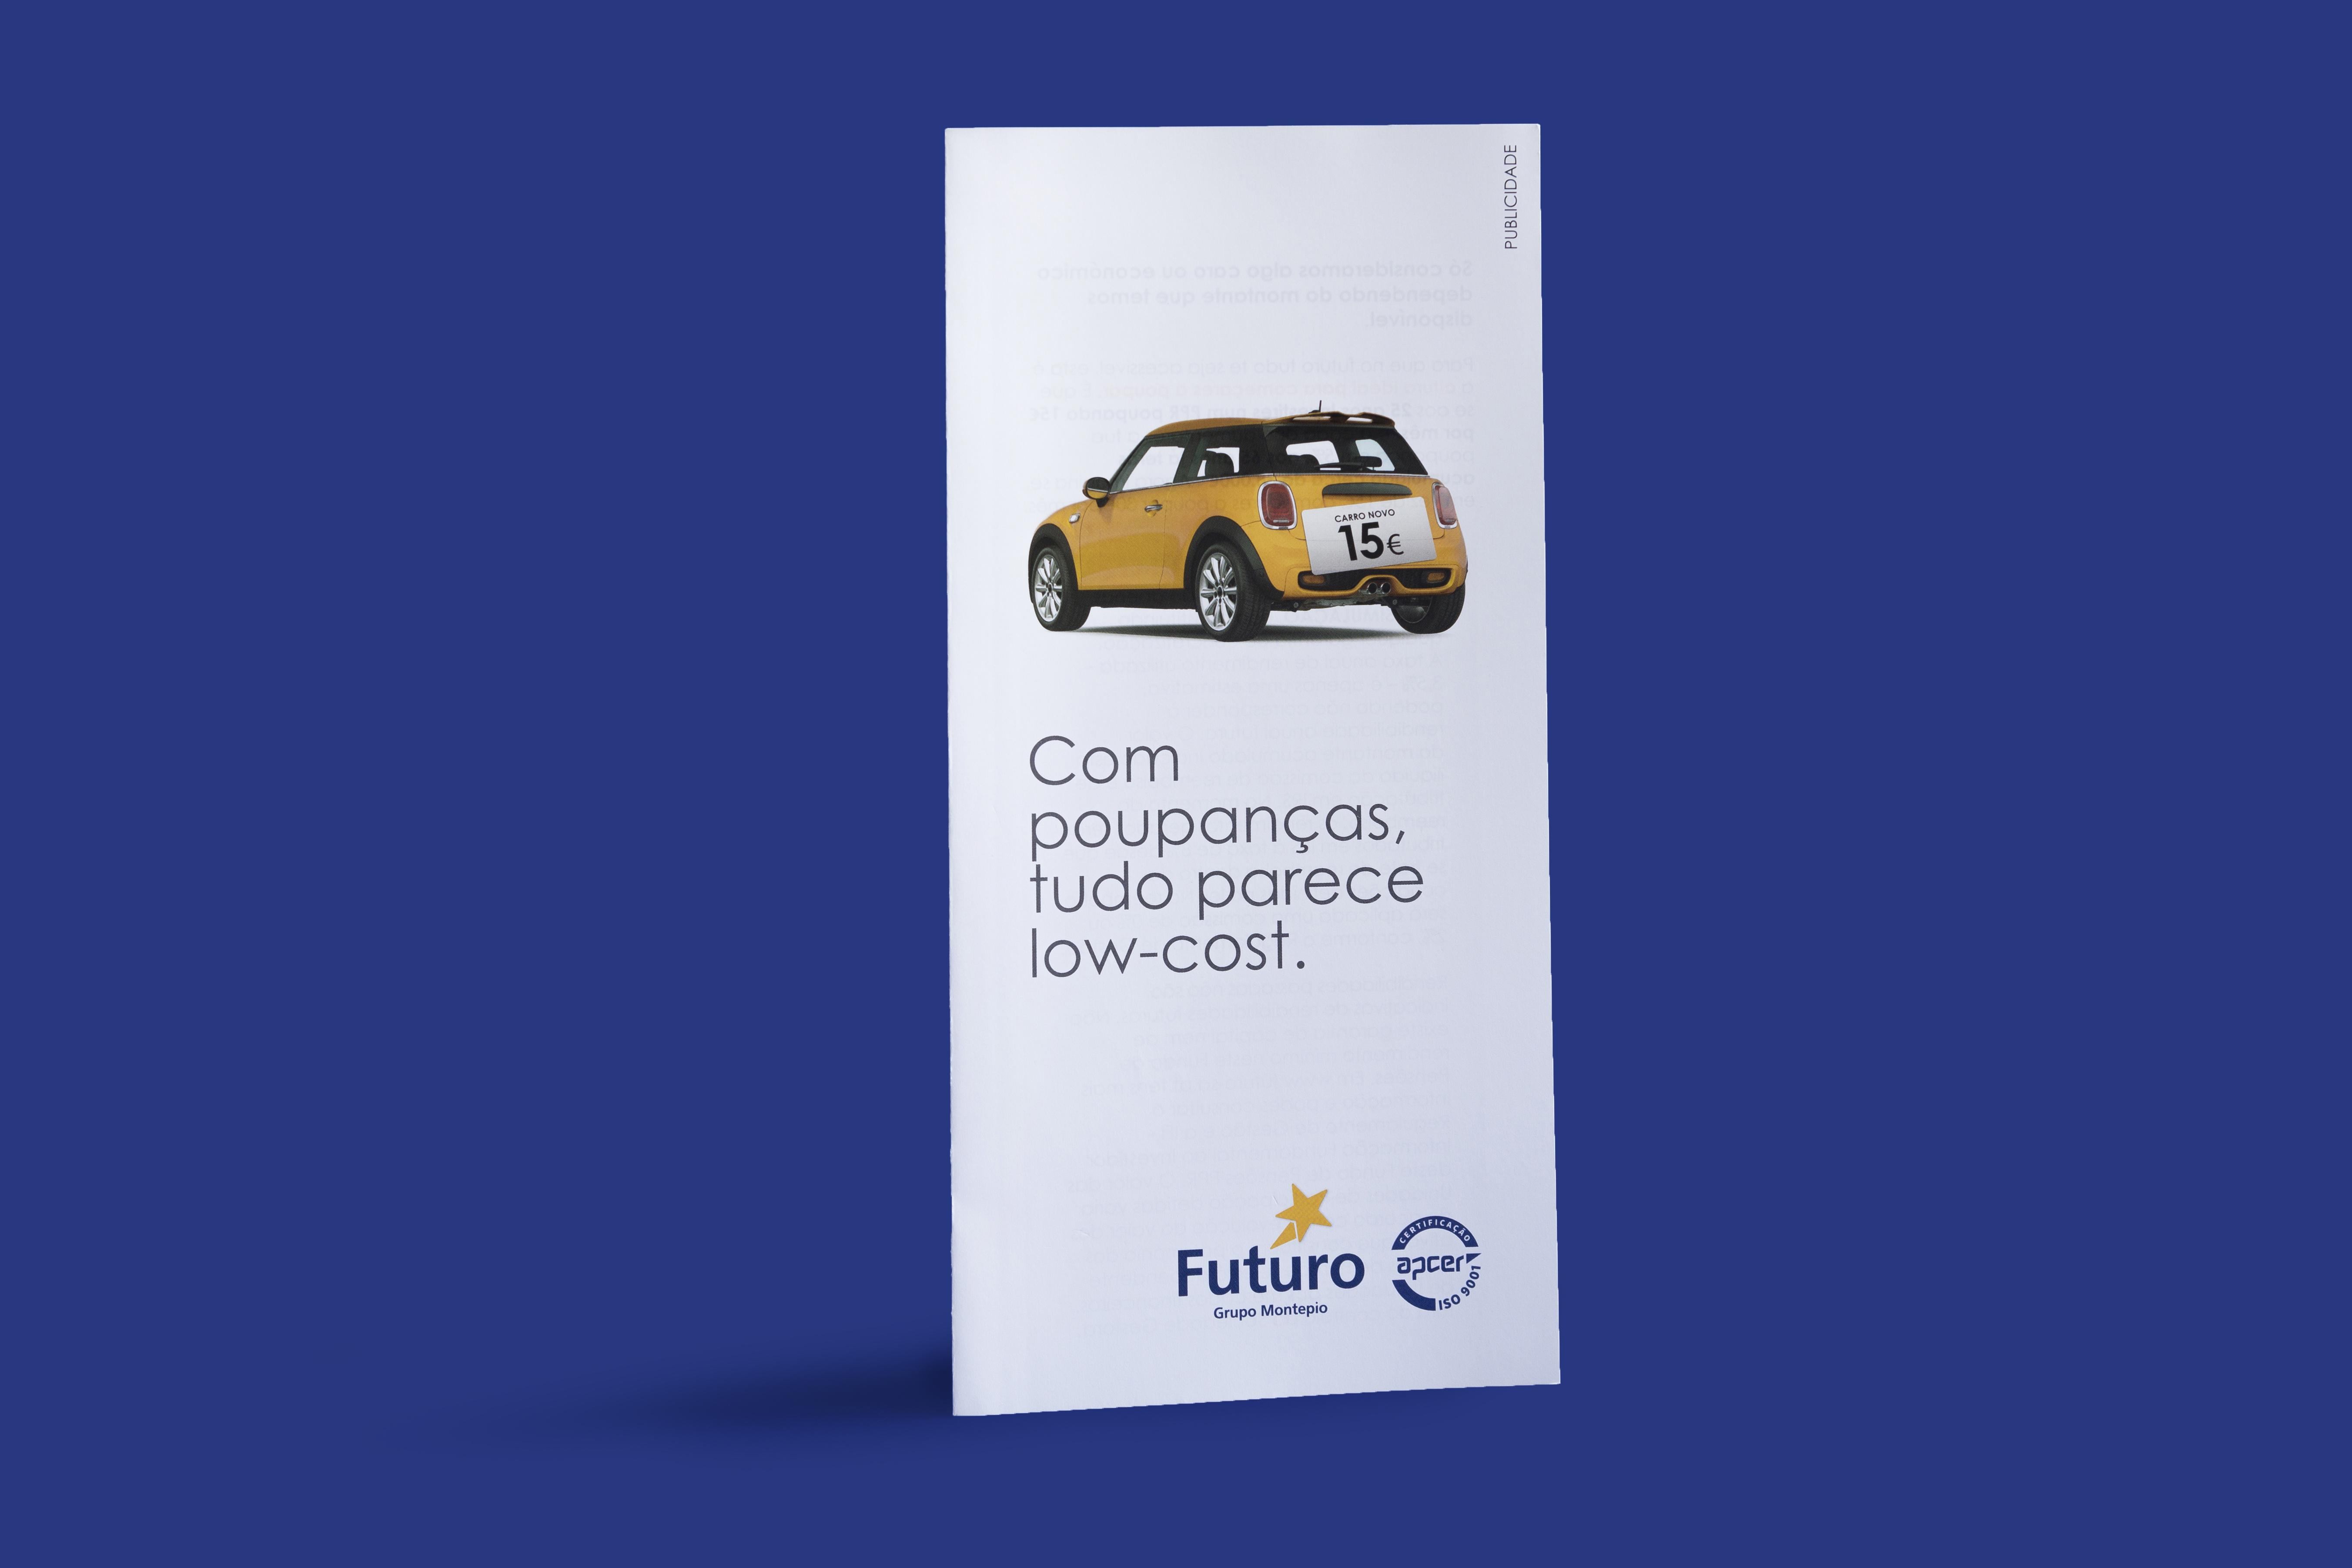 Futuro SA: When you have savings, everything seems low-cost